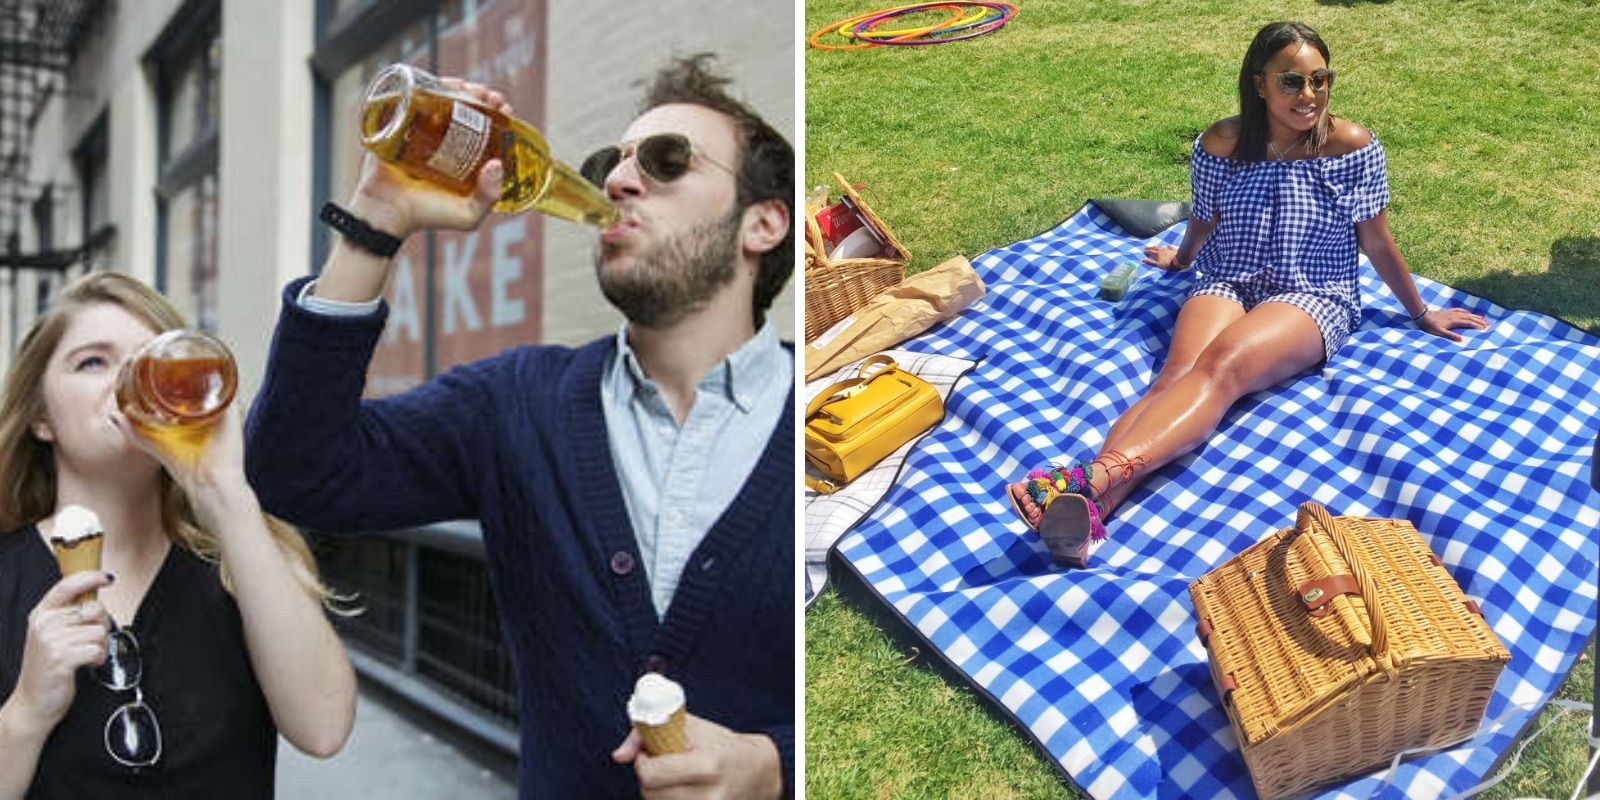 Could there be a constitutional right to drink in parks?